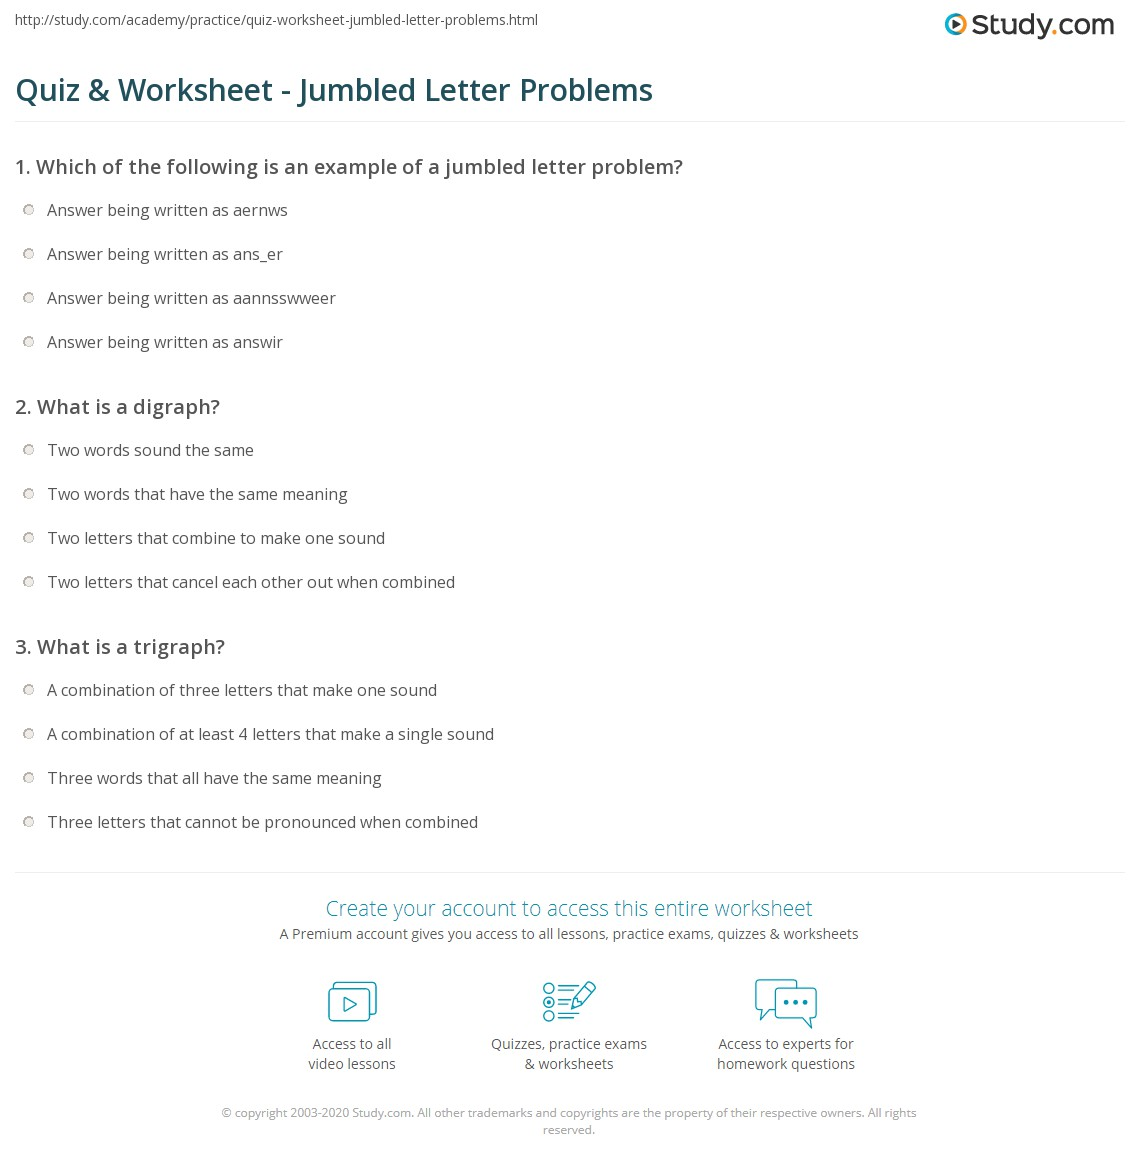 Quiz & Worksheet - Jumbled Letter Problems | Study.com